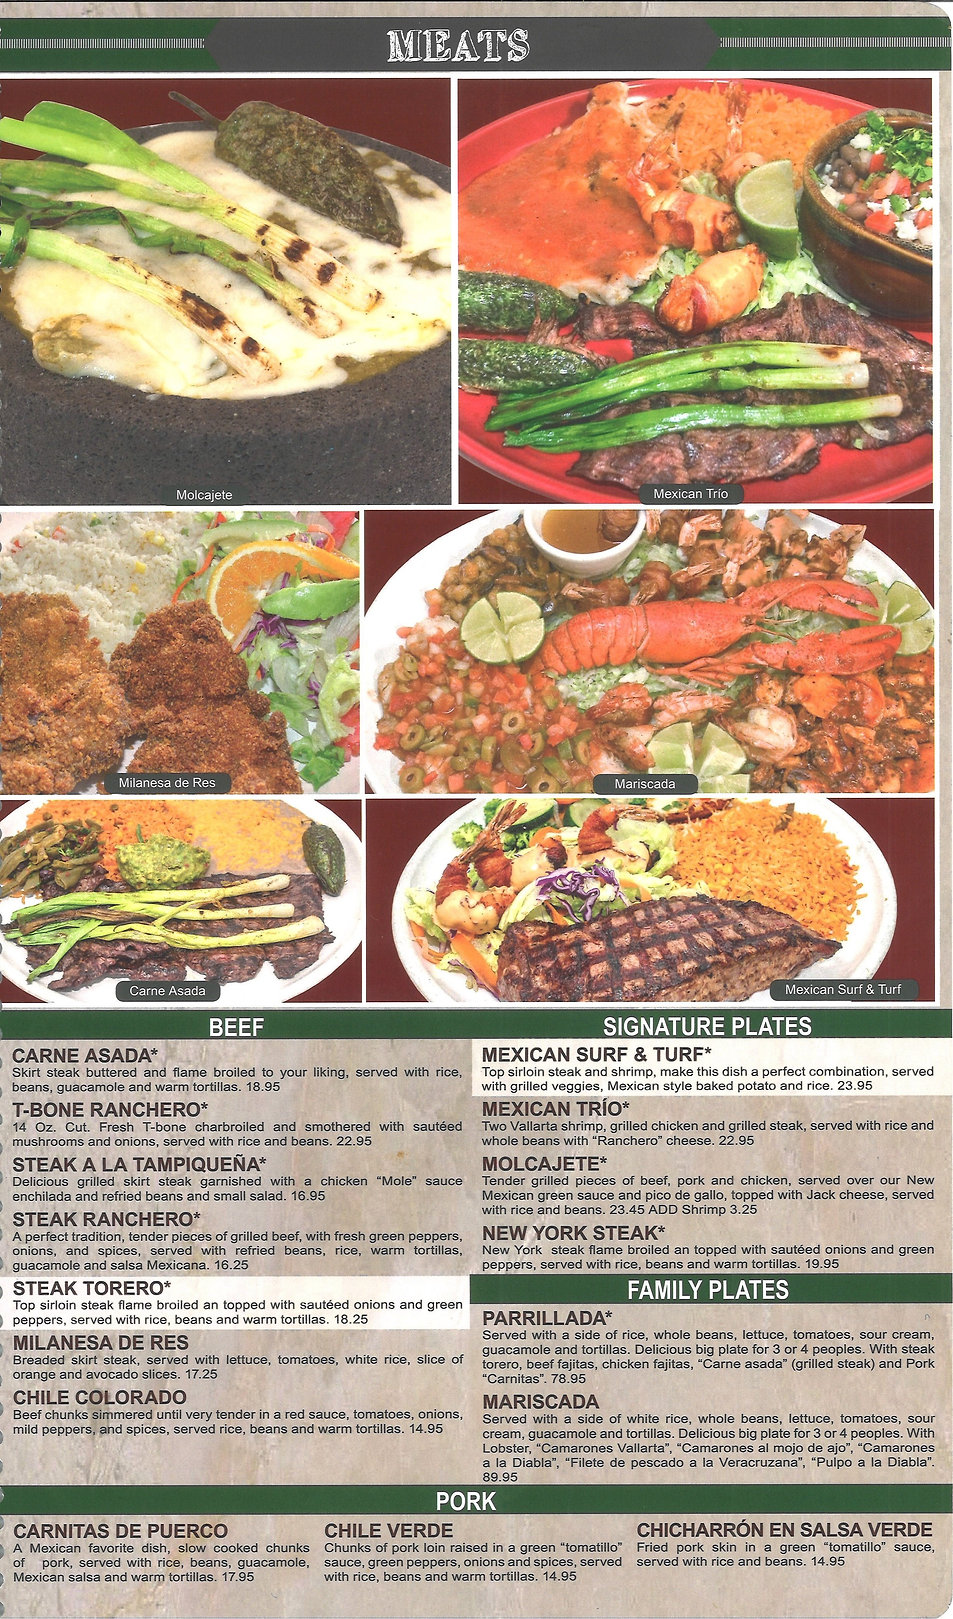 Hacienda Real Menu/meats